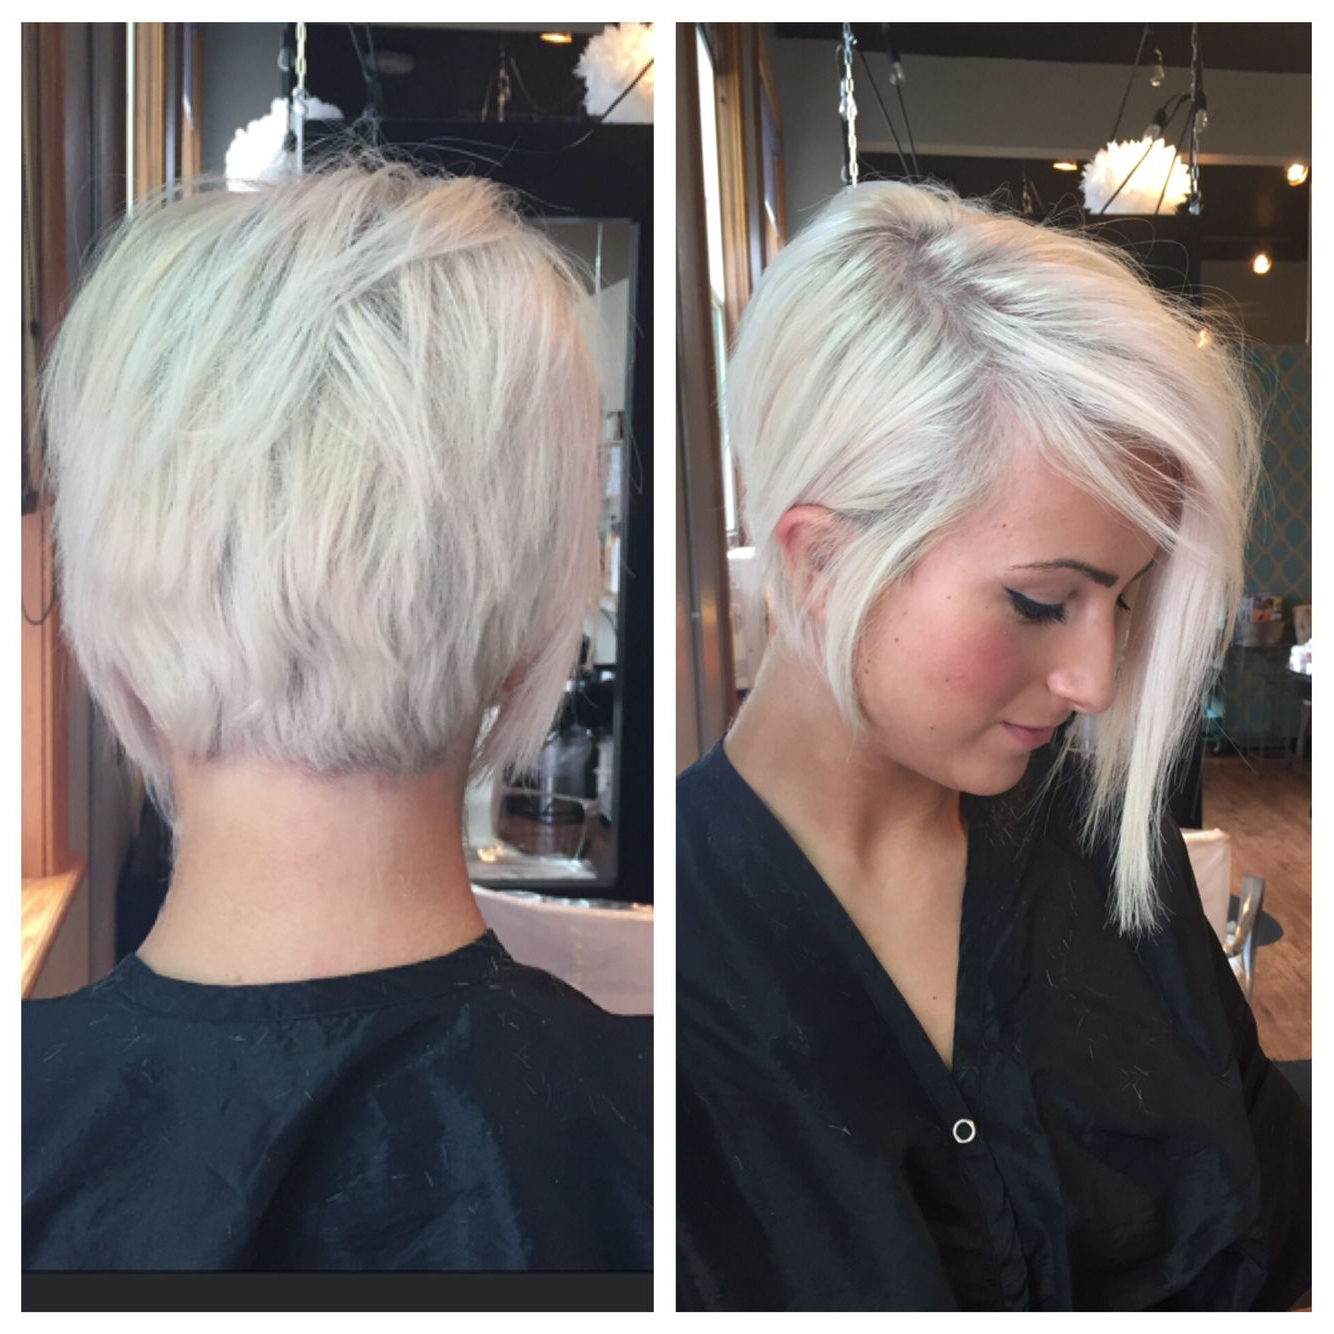 Went Even Shorter! Long A Symmetrical Pixie Cut | Hair With With Asymmetrical Shaggy Pixie Hairstyles (Gallery 7 of 20)